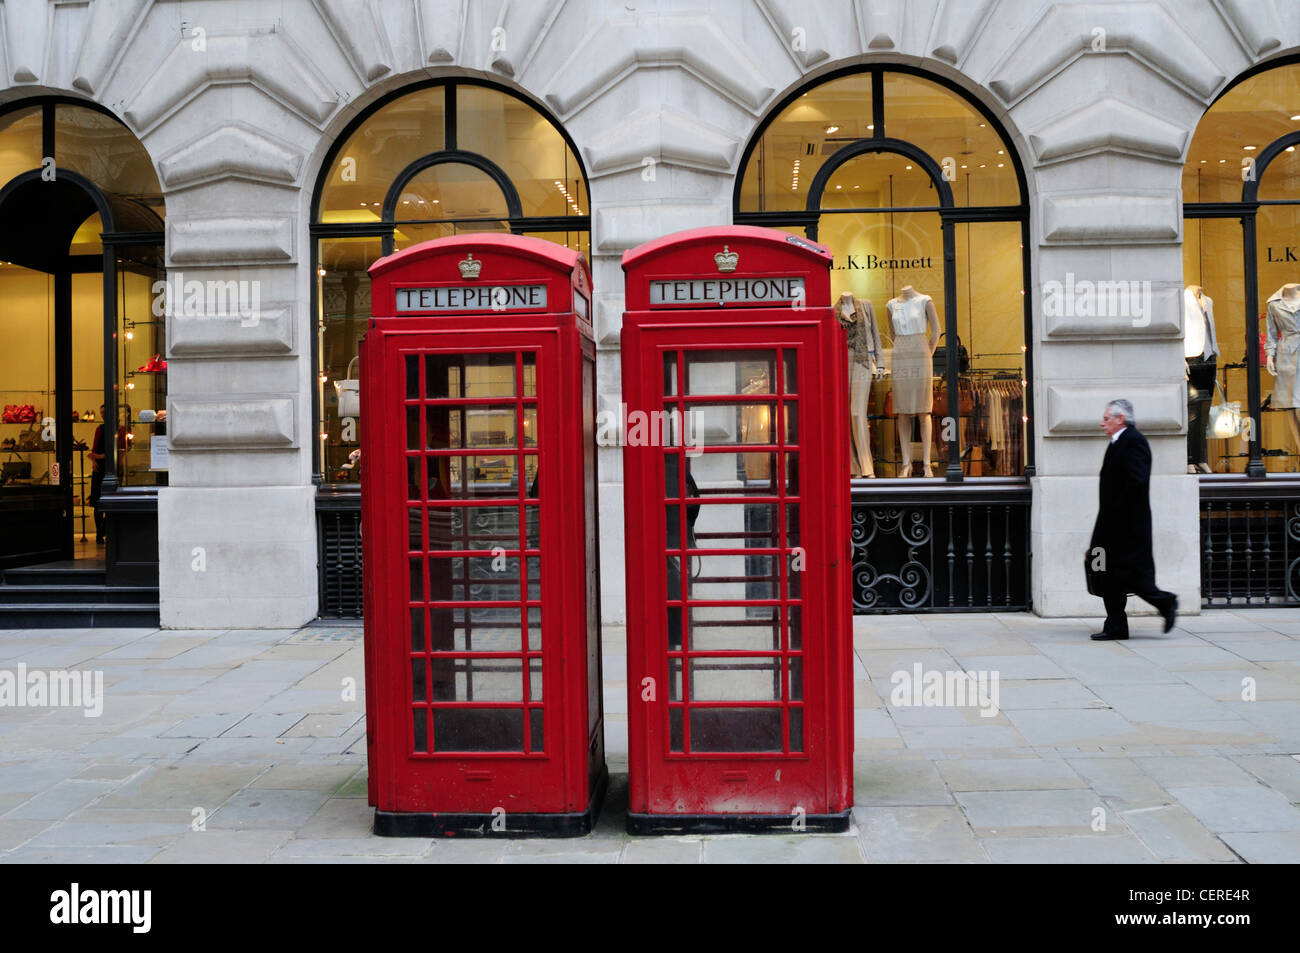 Red telephone boxes outside a L.K. Bennett clothes shop in the Royal Exchange. - Stock Image